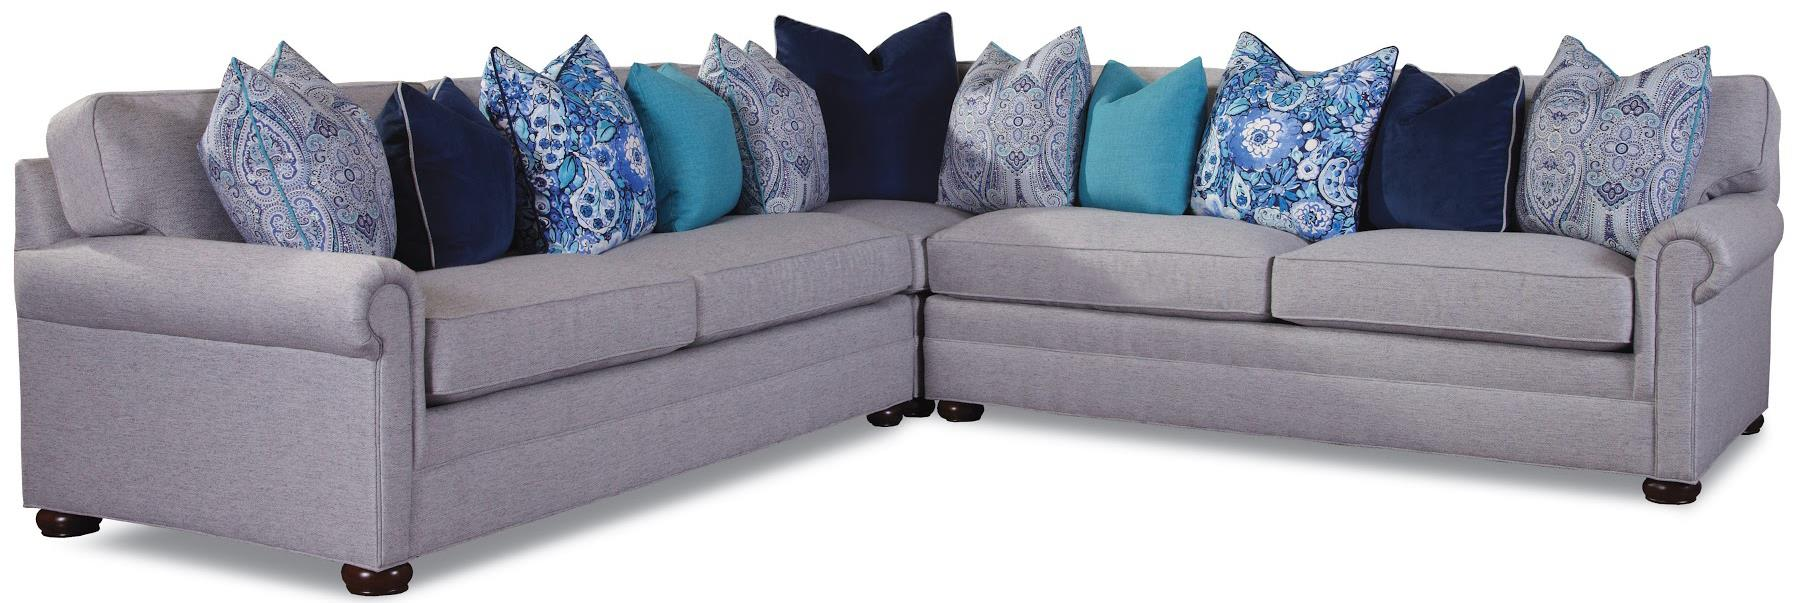 Huntington House 7169 Sectional - Item Number: 7169-43+31+42-61304-71